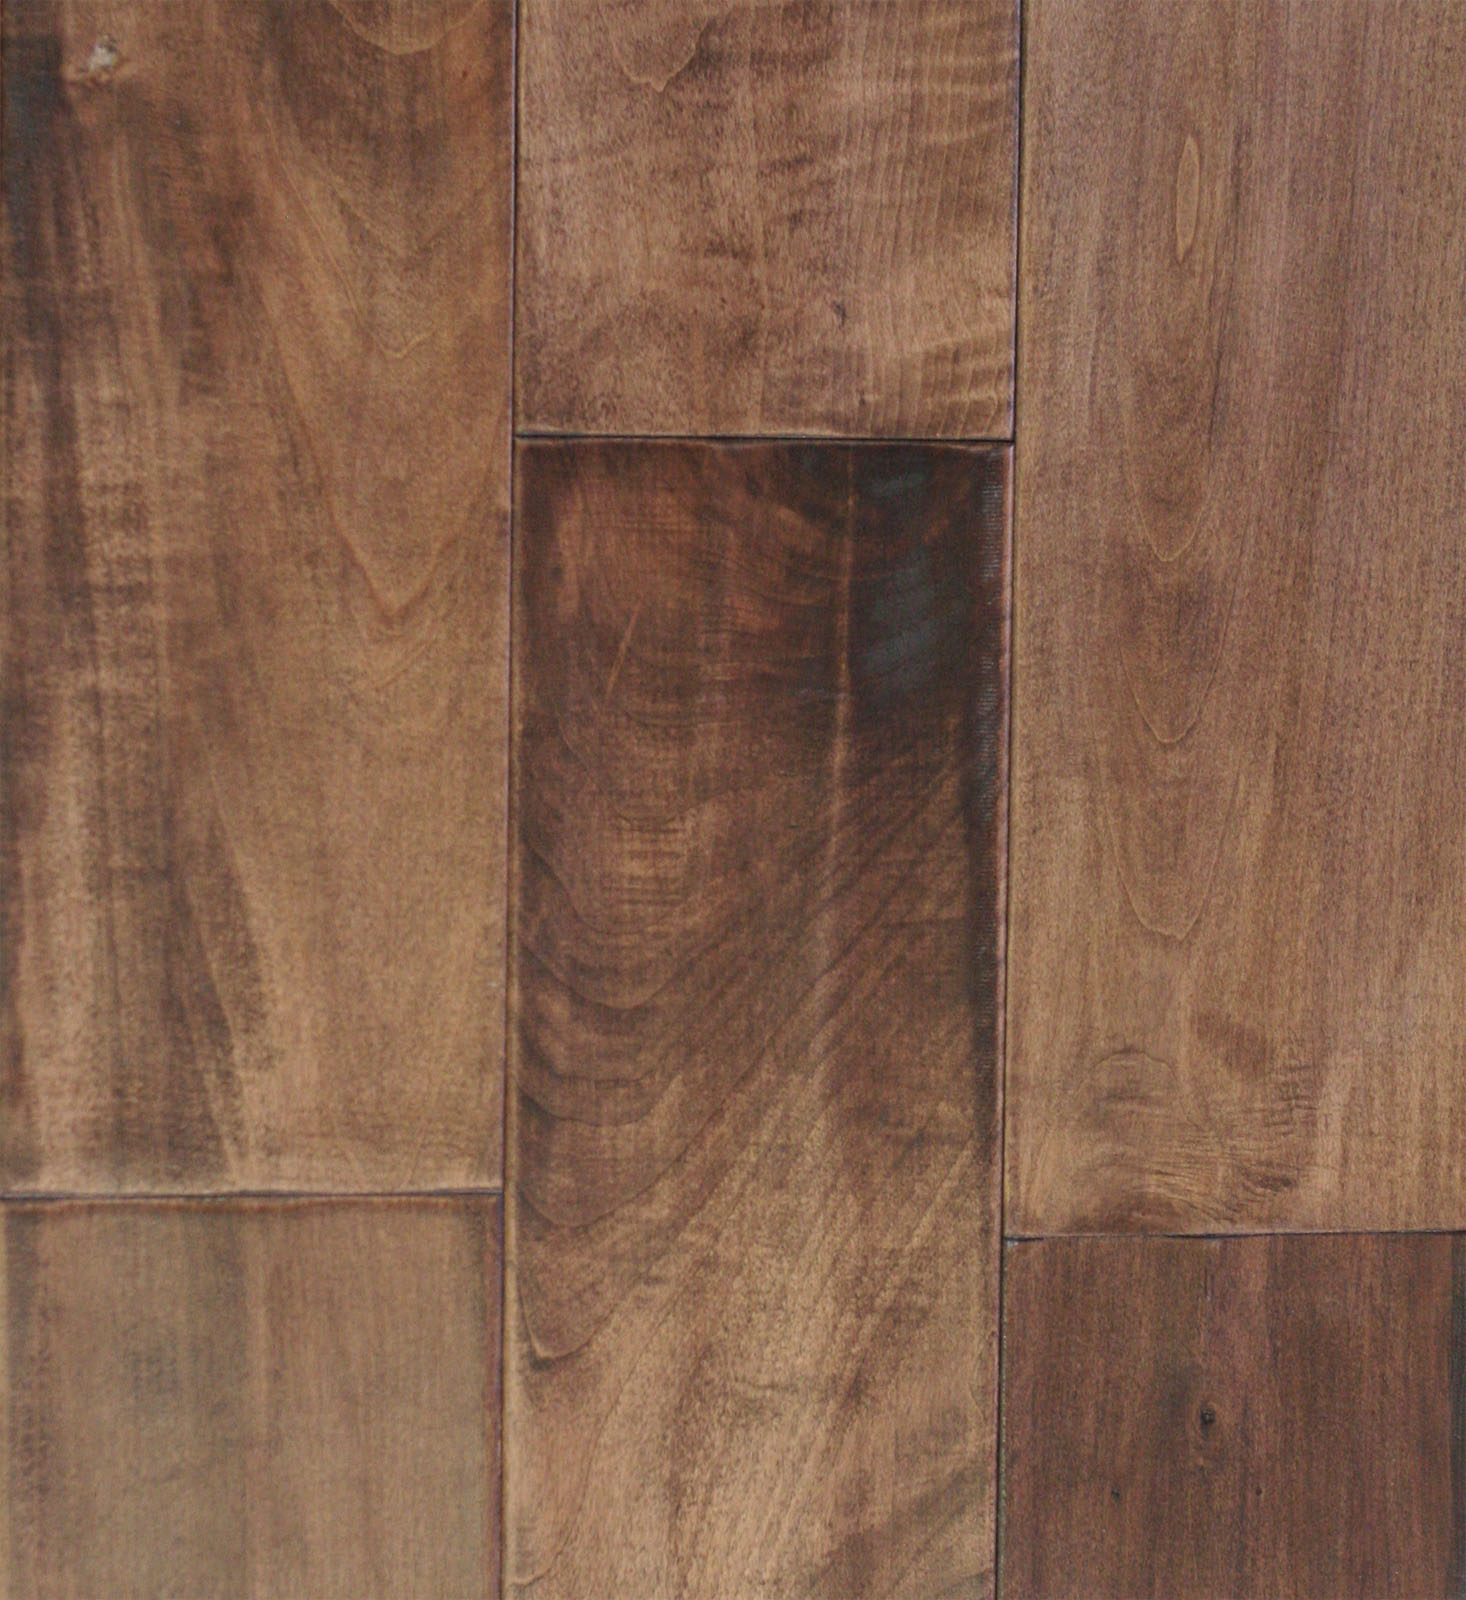 Very Impressive portraiture of Engineered Hardwood Floors: Cleaning Prefinished Engineered Hardwood  with #846347 color and 1466x1600 pixels